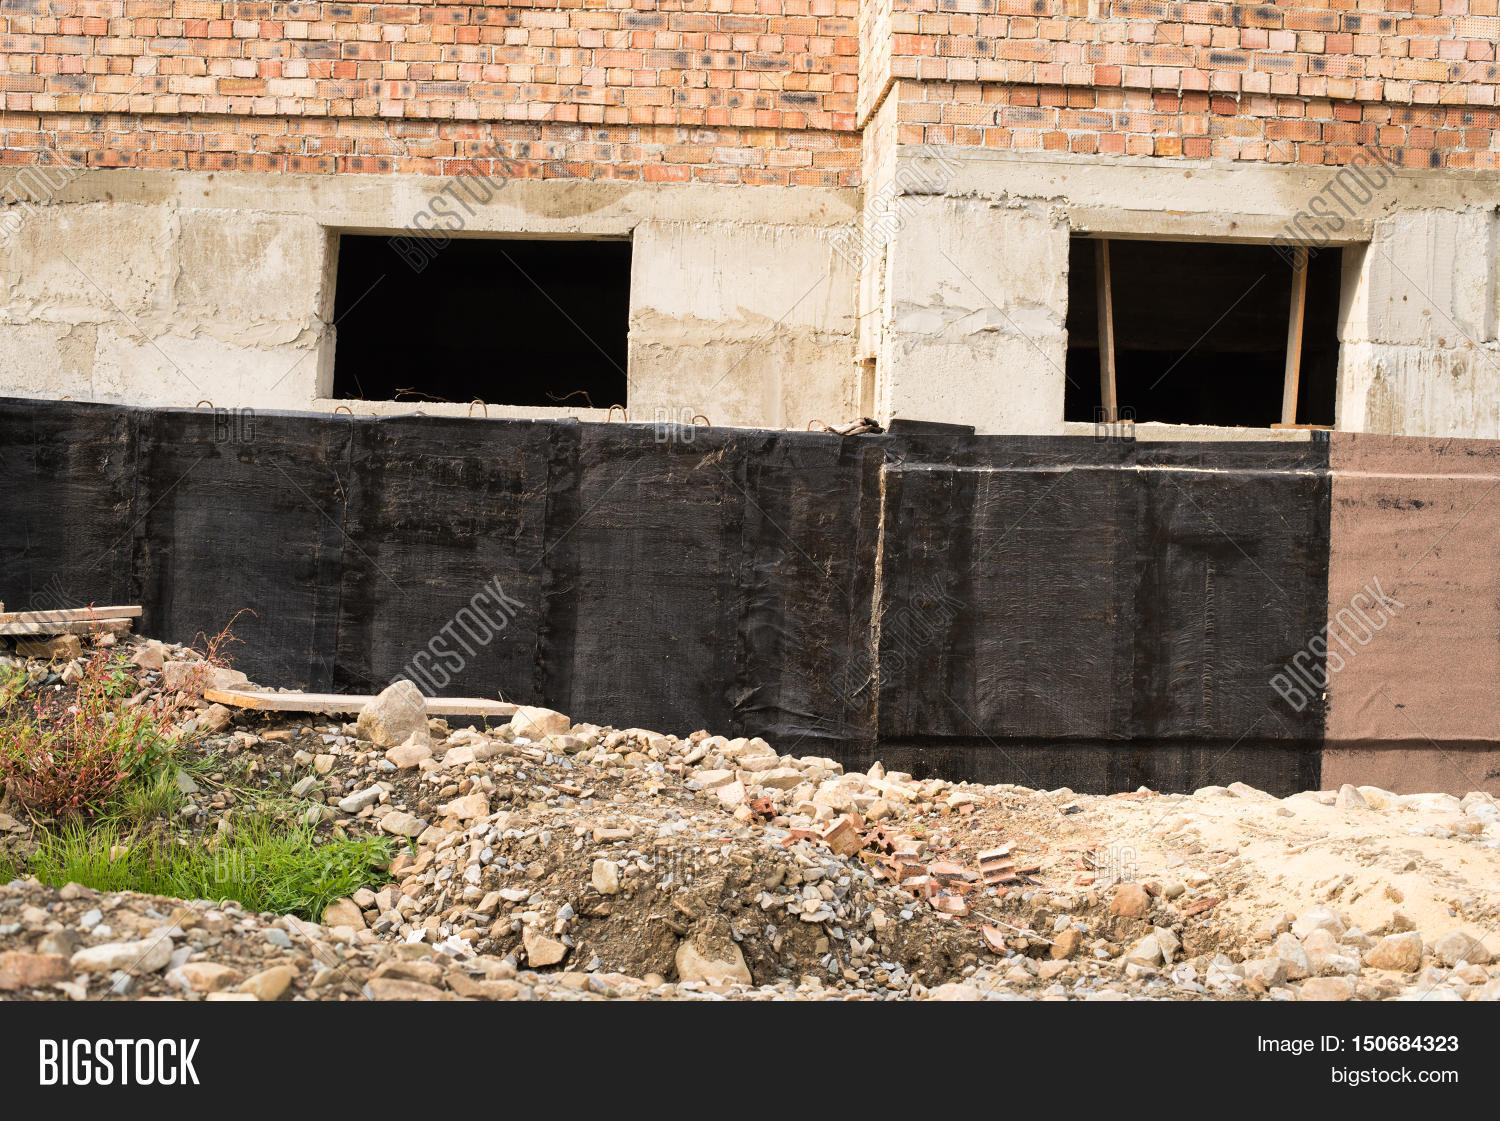 Construction image photo free trial bigstock for Basement construction methods